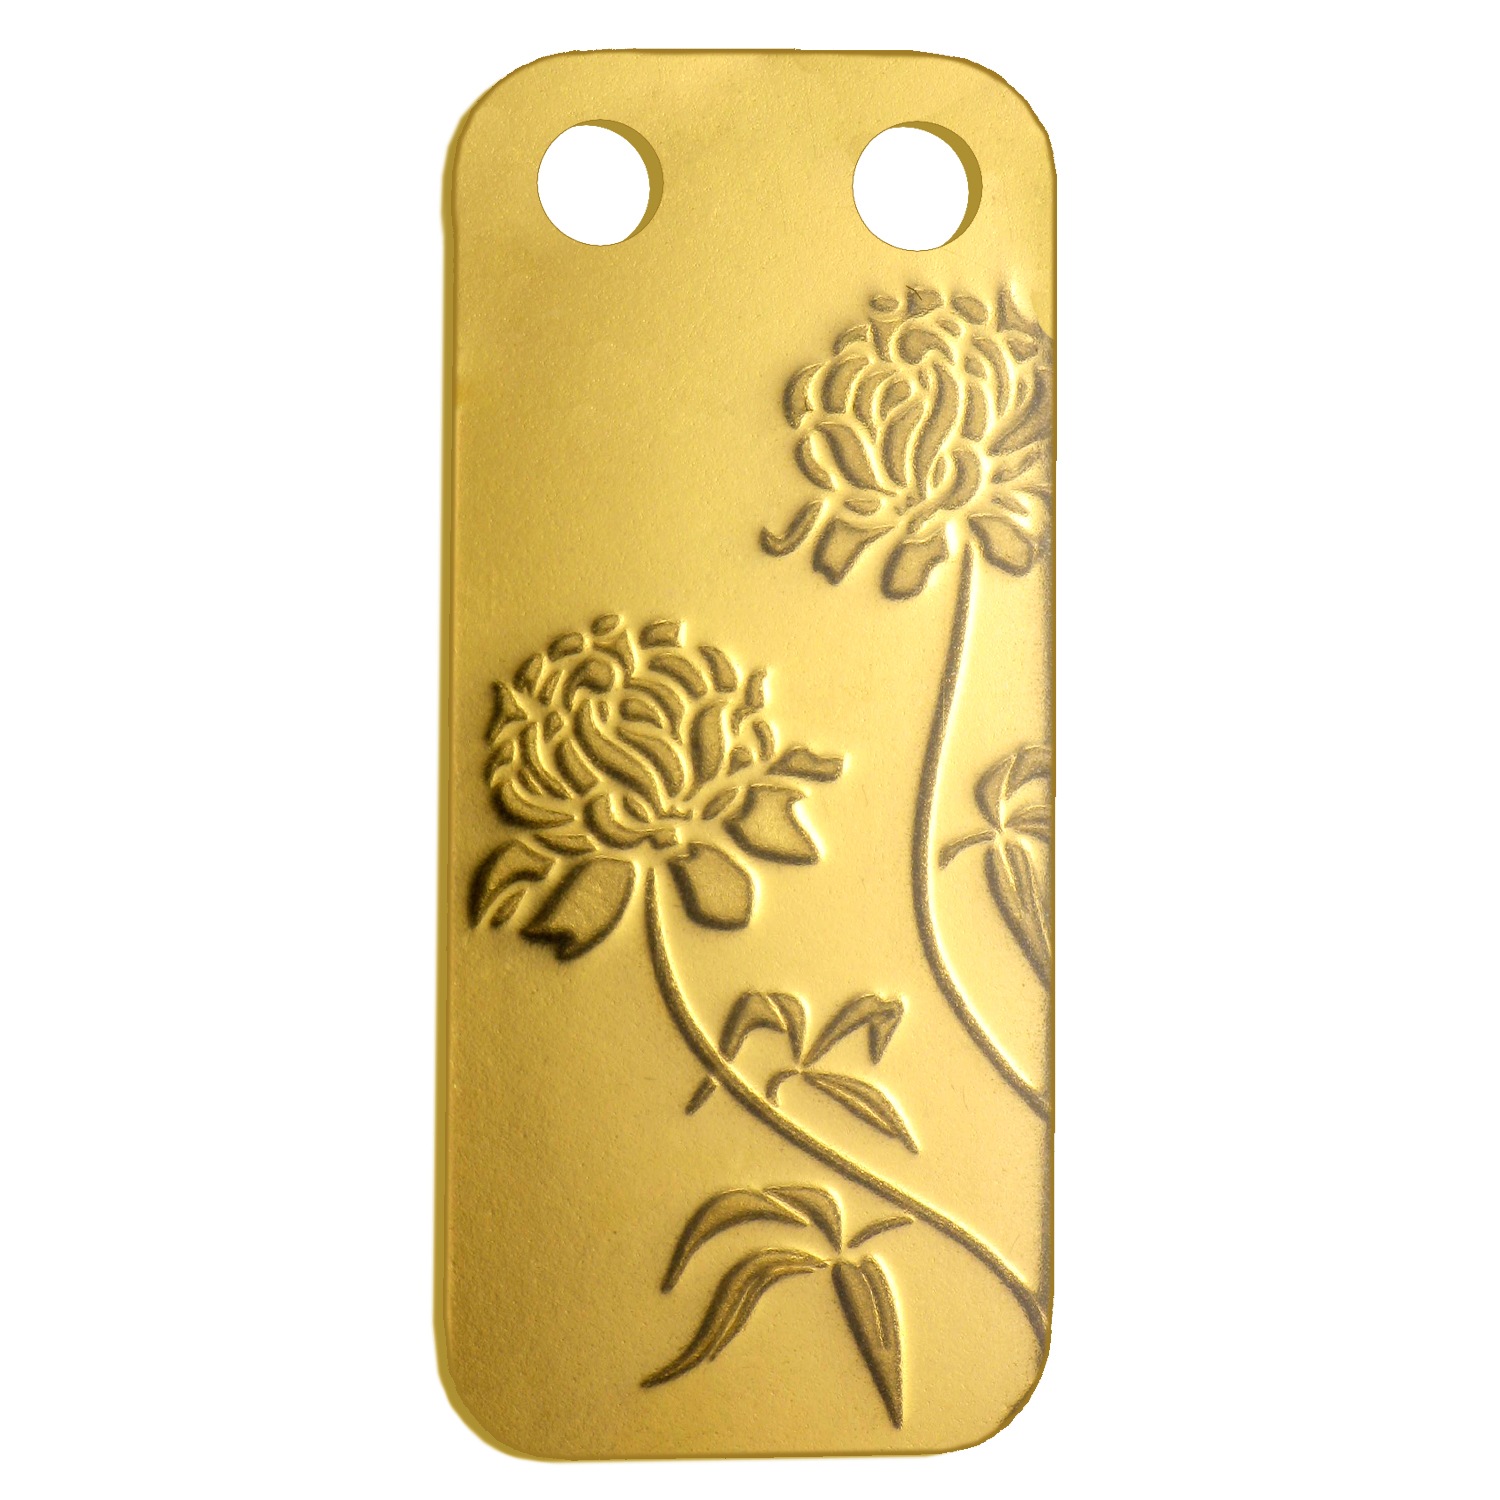 1/5 oz Gold Pendants - Pamp Suisse Ingot (Peony, Proof)